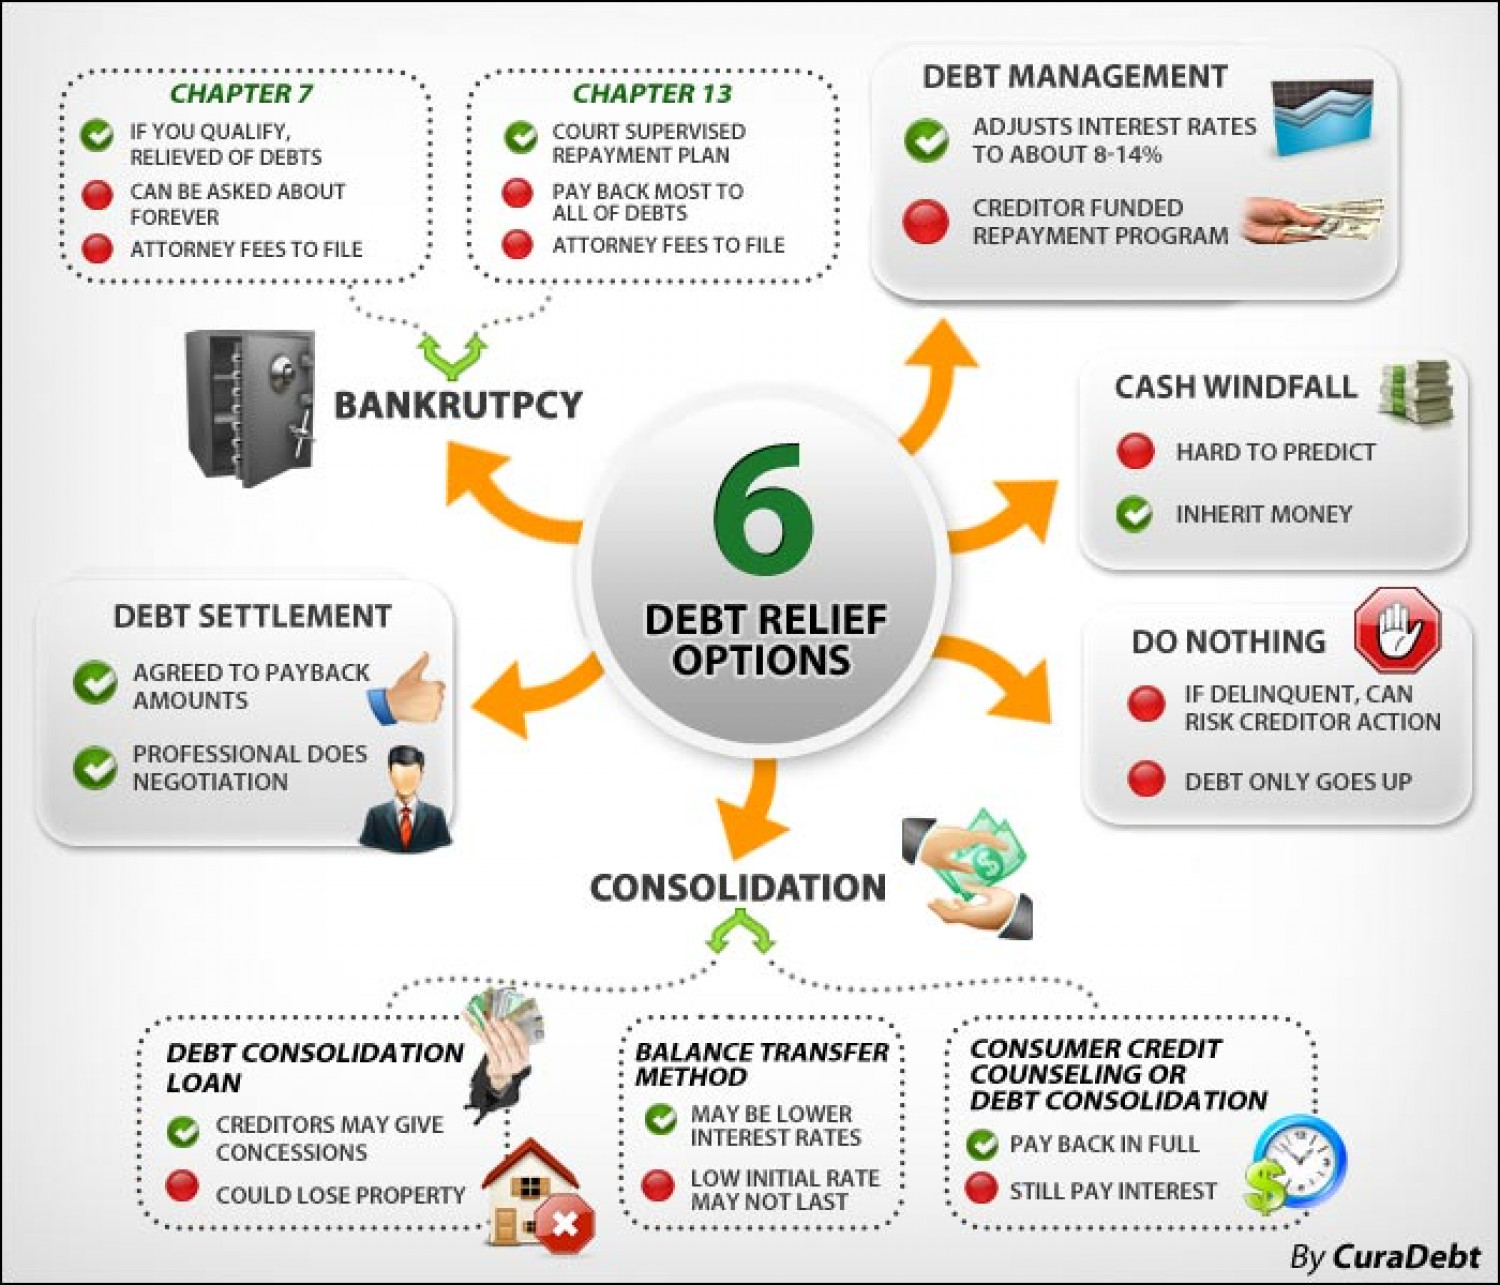 6 Debt Relief Options Infographic